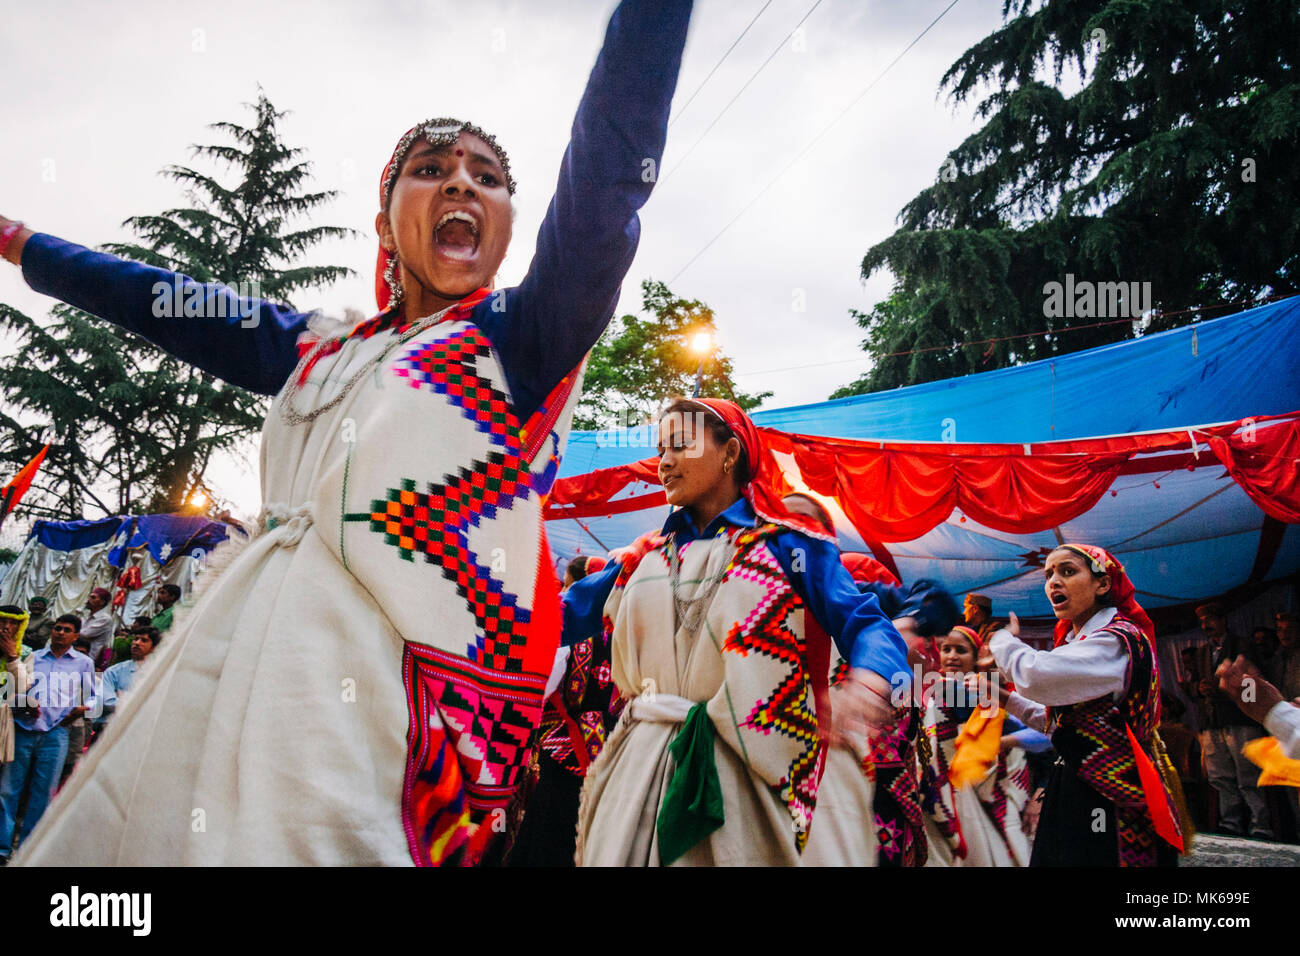 Nagar, Himachal Pradesh, India : During the Naggar Mela festival Himachali women dance in honor of the local deity Tripura Sundari outside her temple  - Stock Image